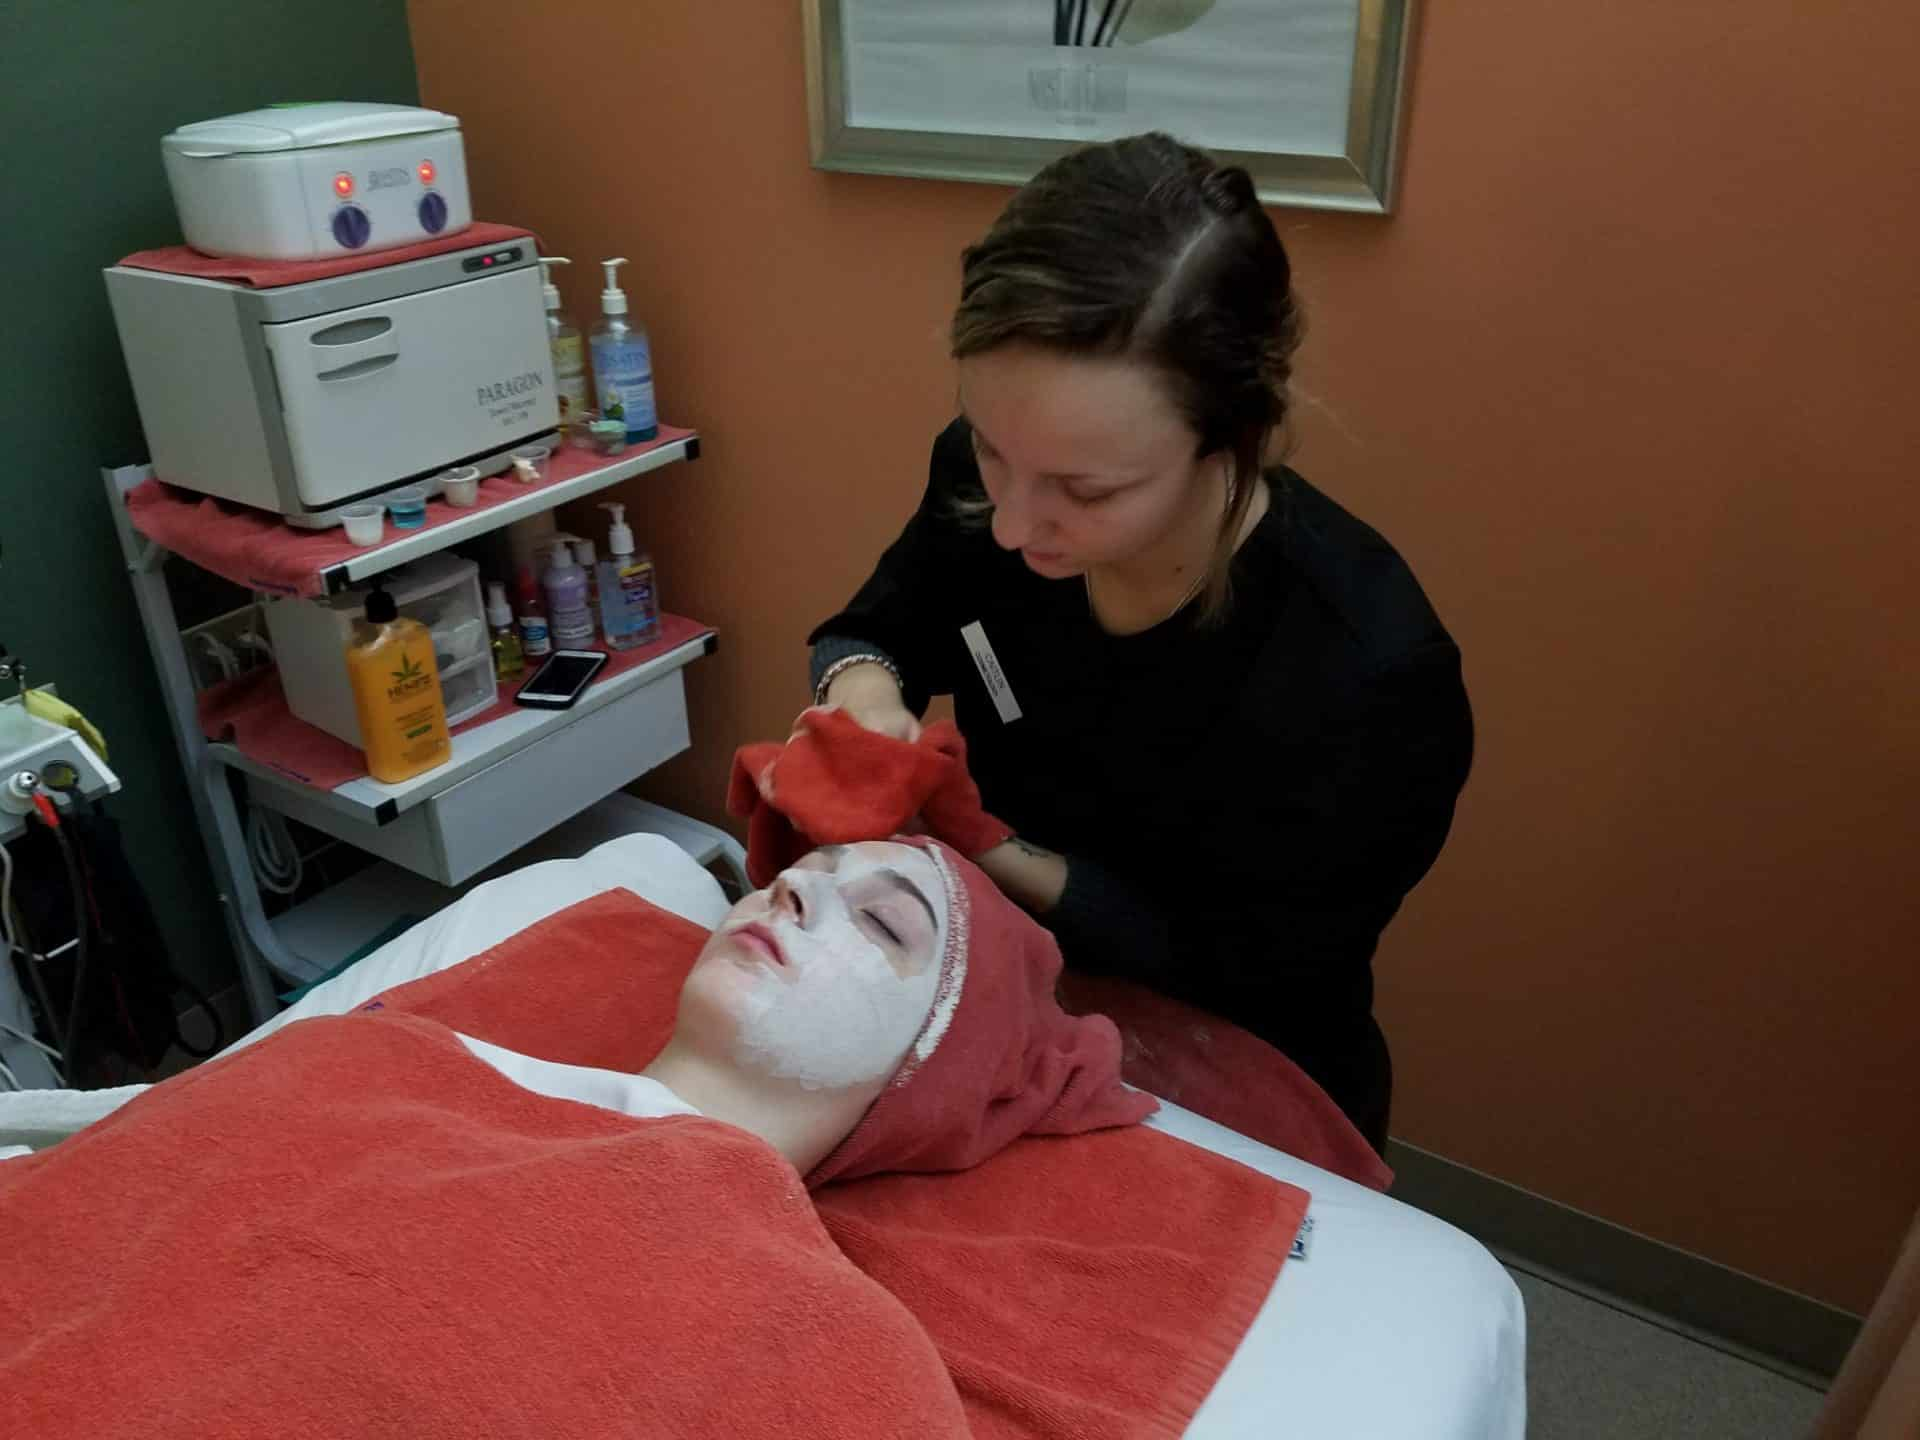 Cosmo student giving a client a facial service